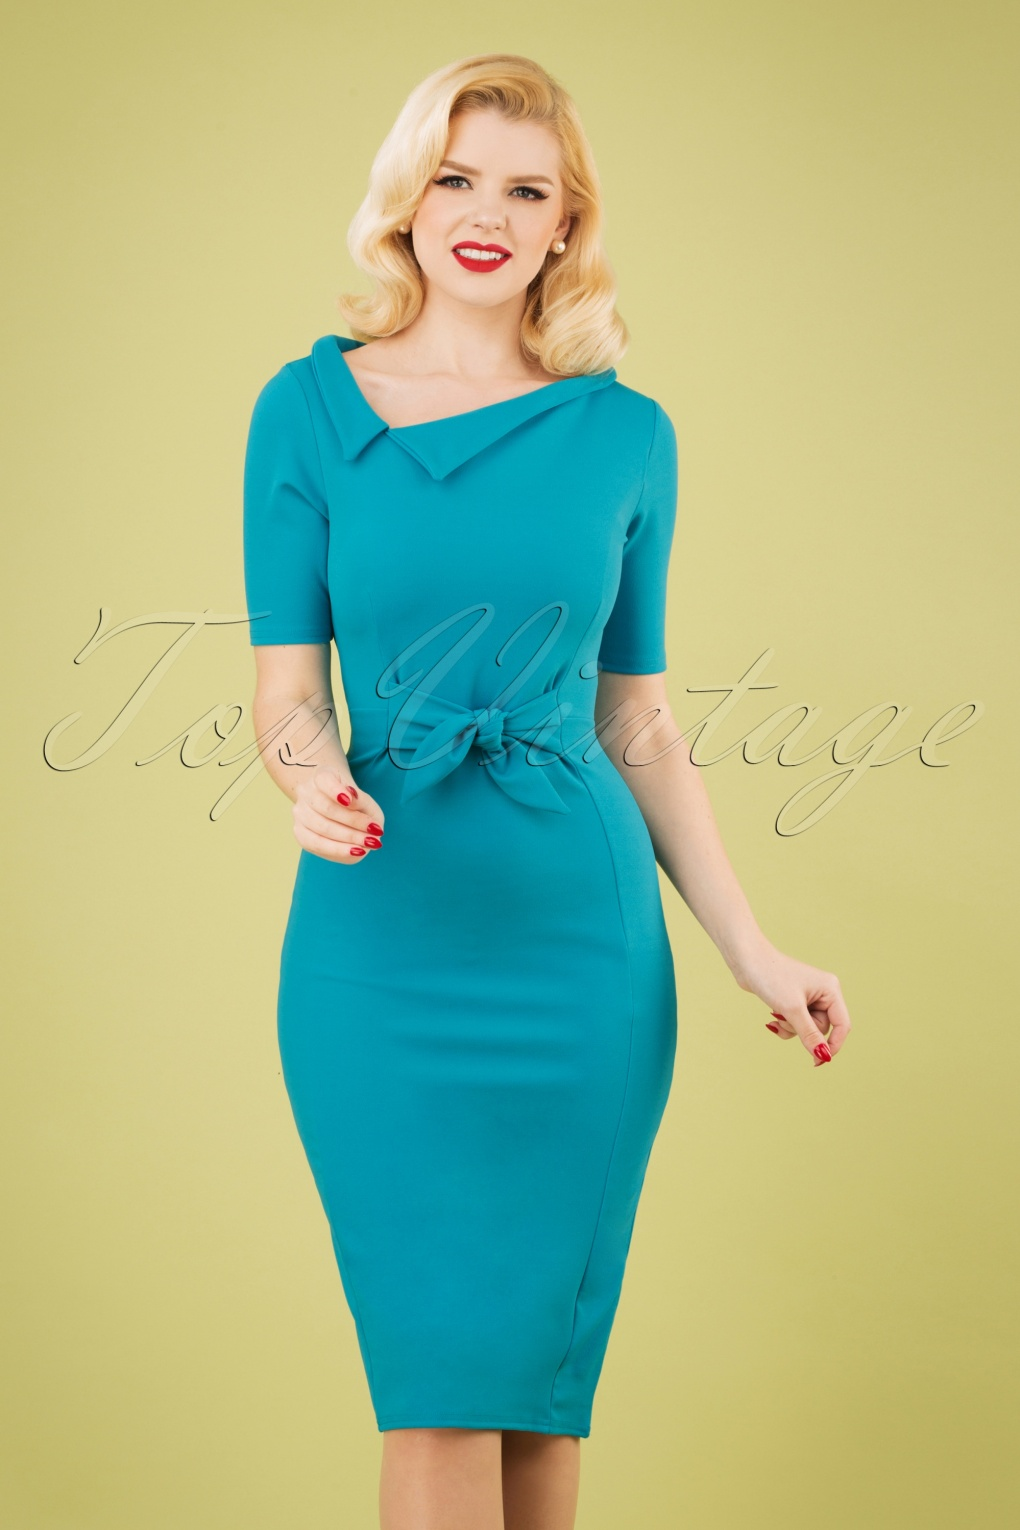 Dress Like the Marvelous Mrs. Maisel 50s Jennifer Pencil Dress in Aqua Blue �49.34 AT vintagedancer.com